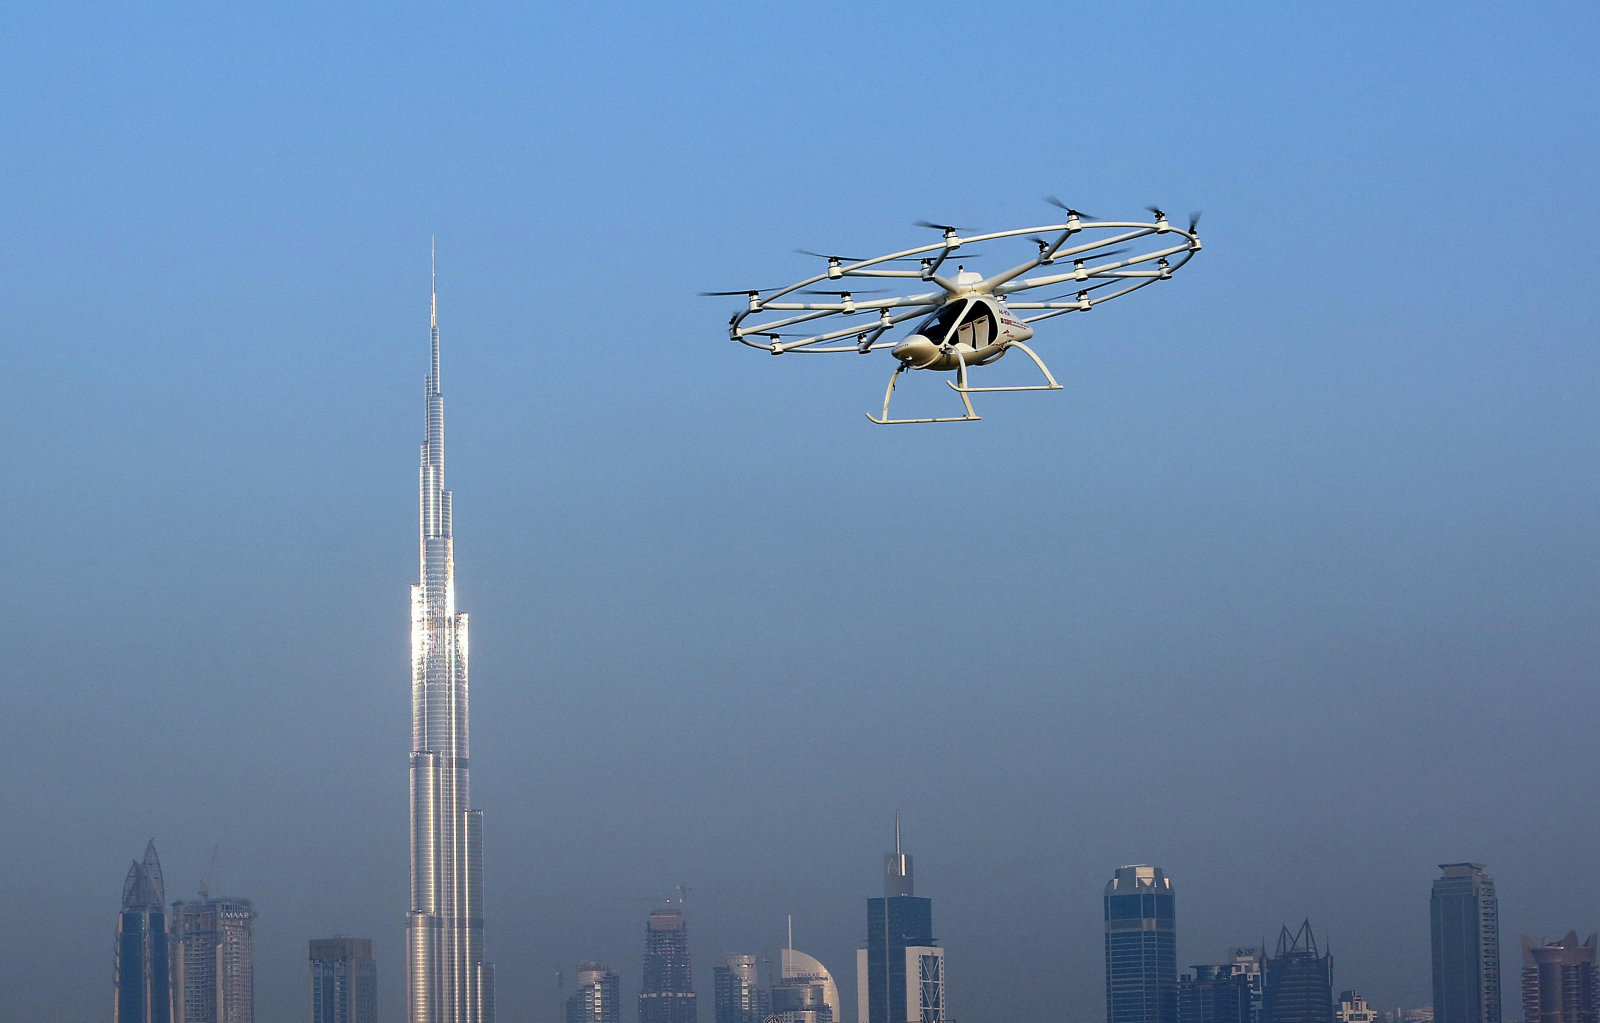 The flying taxi is seen in Dubai, United Arab Emirates September 25, 2017. REUTERS/Satish Kumar